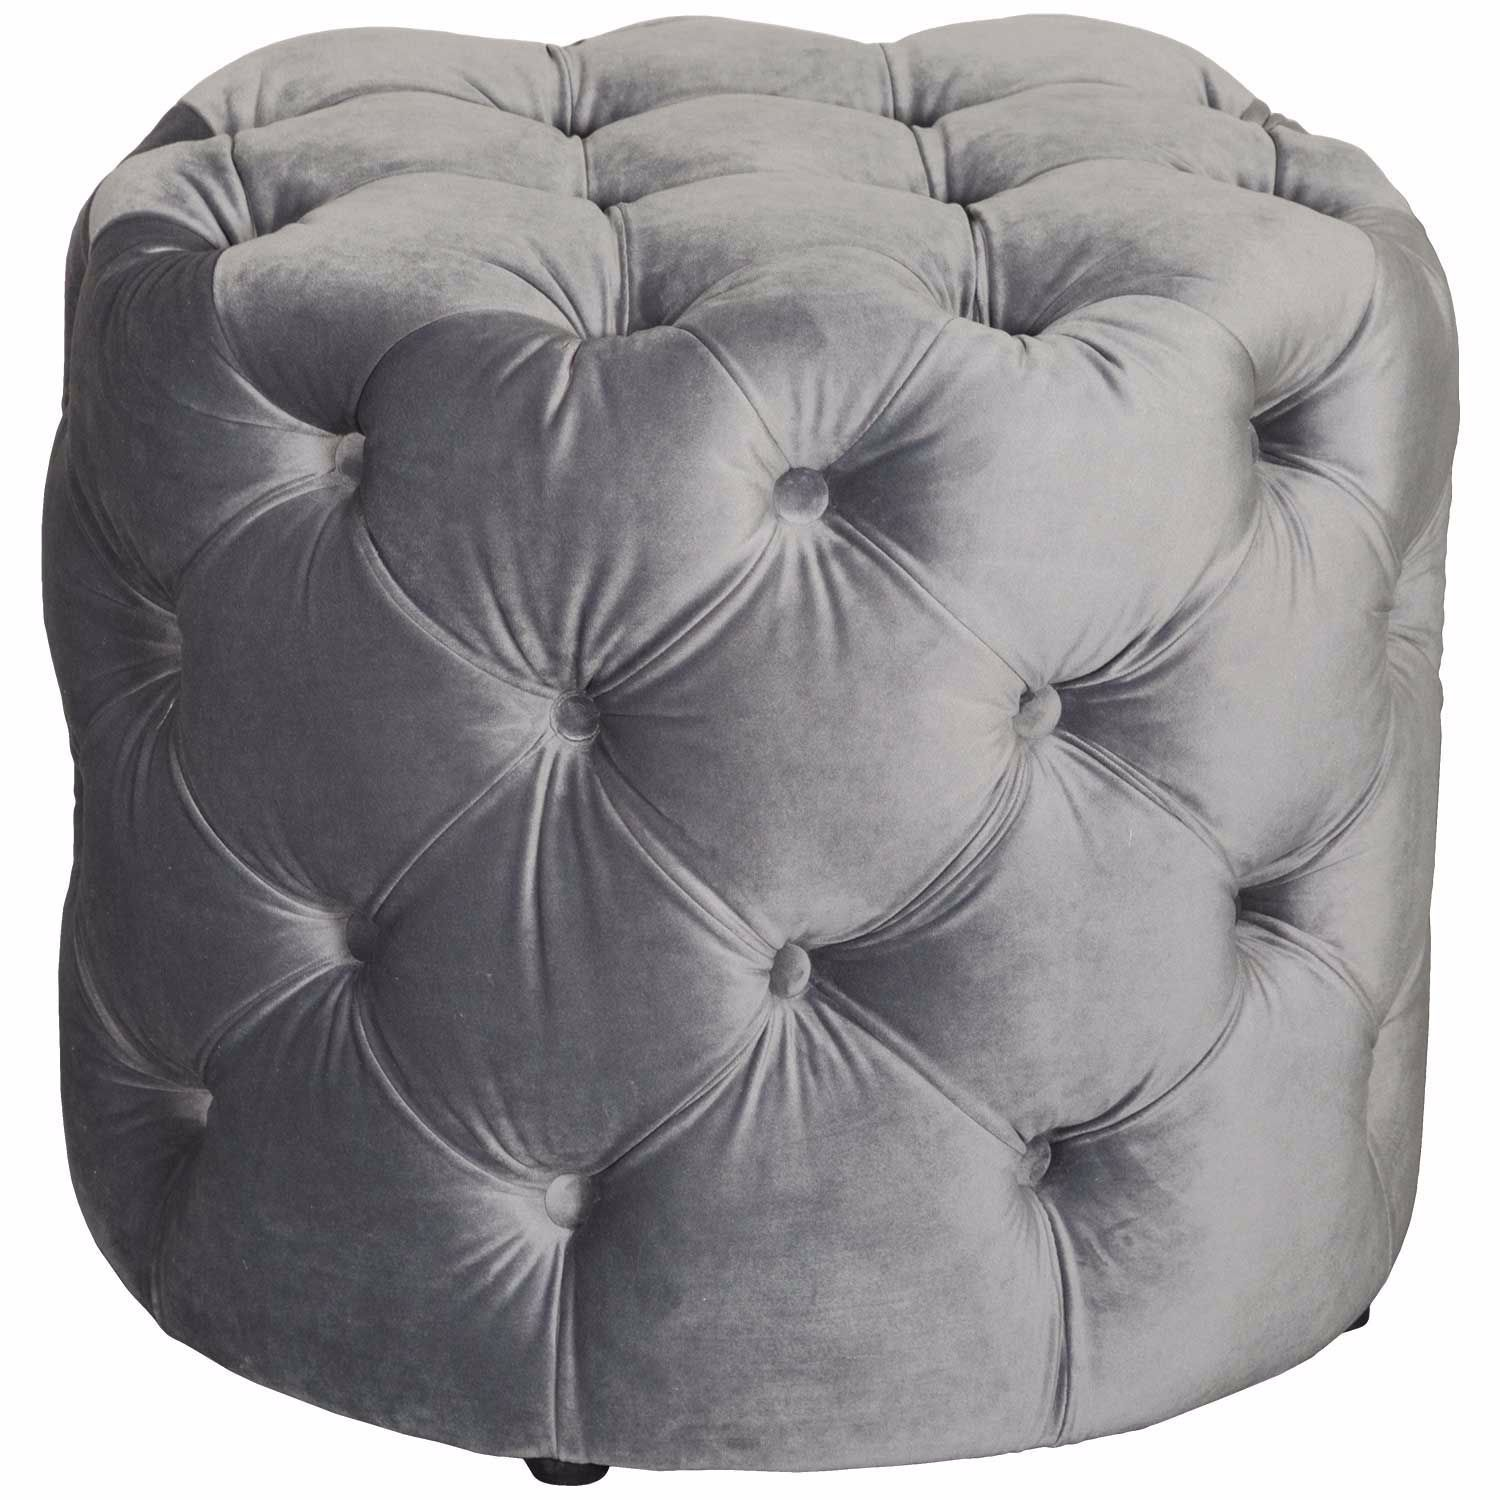 Olivia Tufted Gray Small Round Ottoman In 2020 Small Round